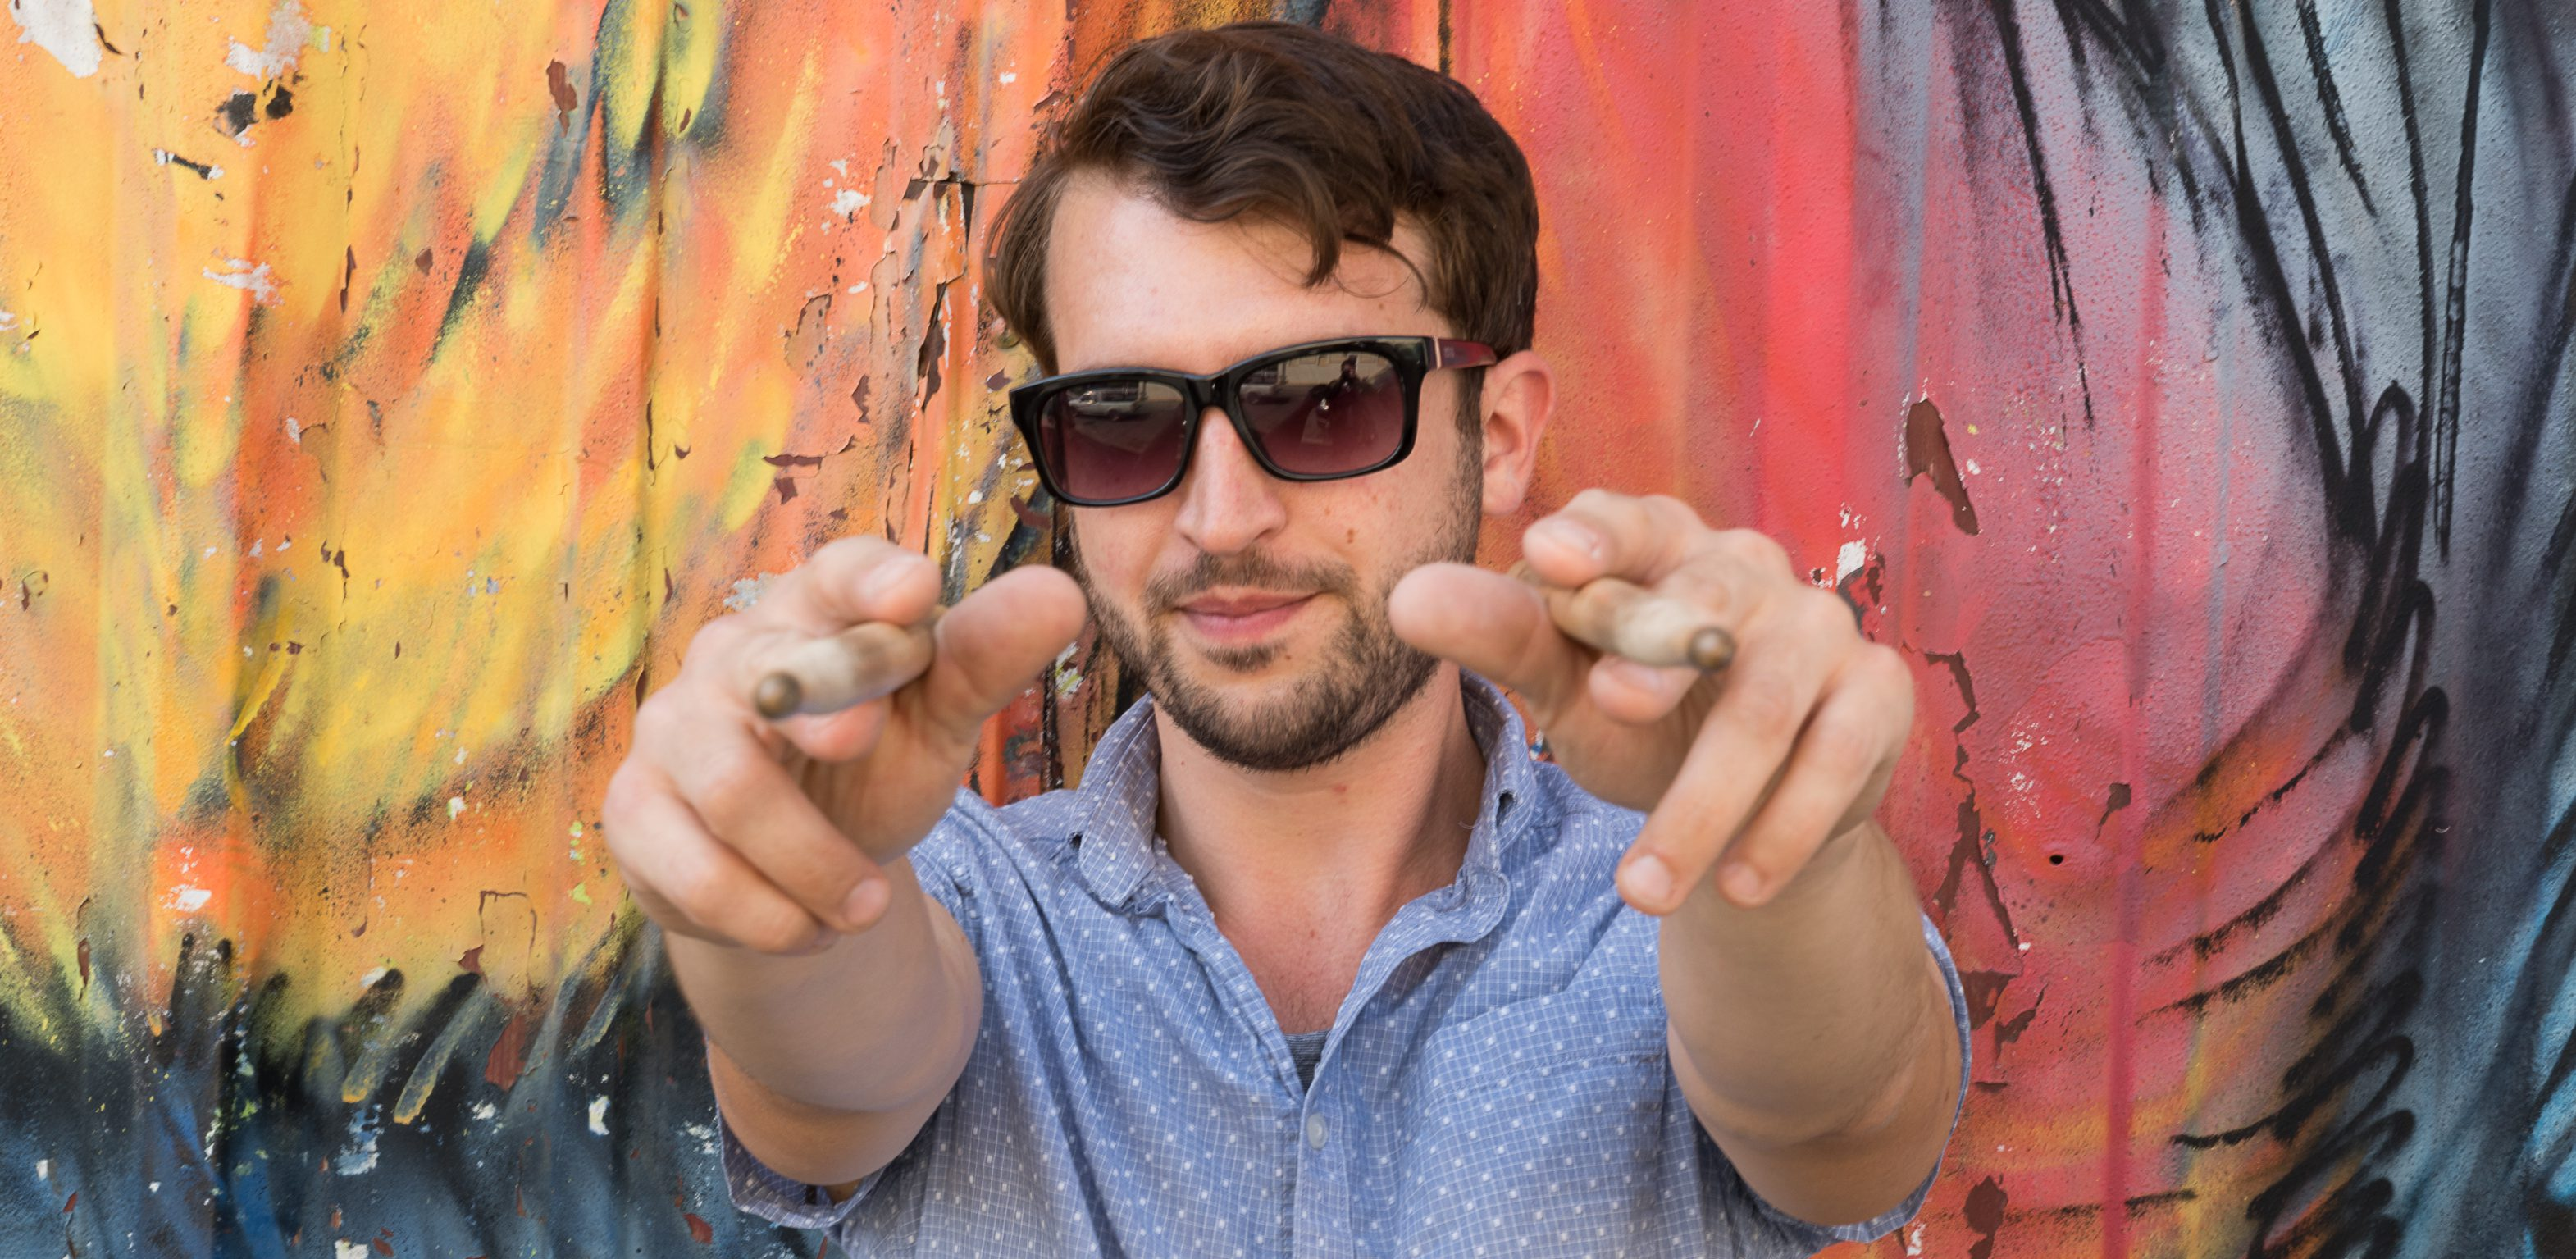 Adam Everett with drum sticks in front of a colorful wall